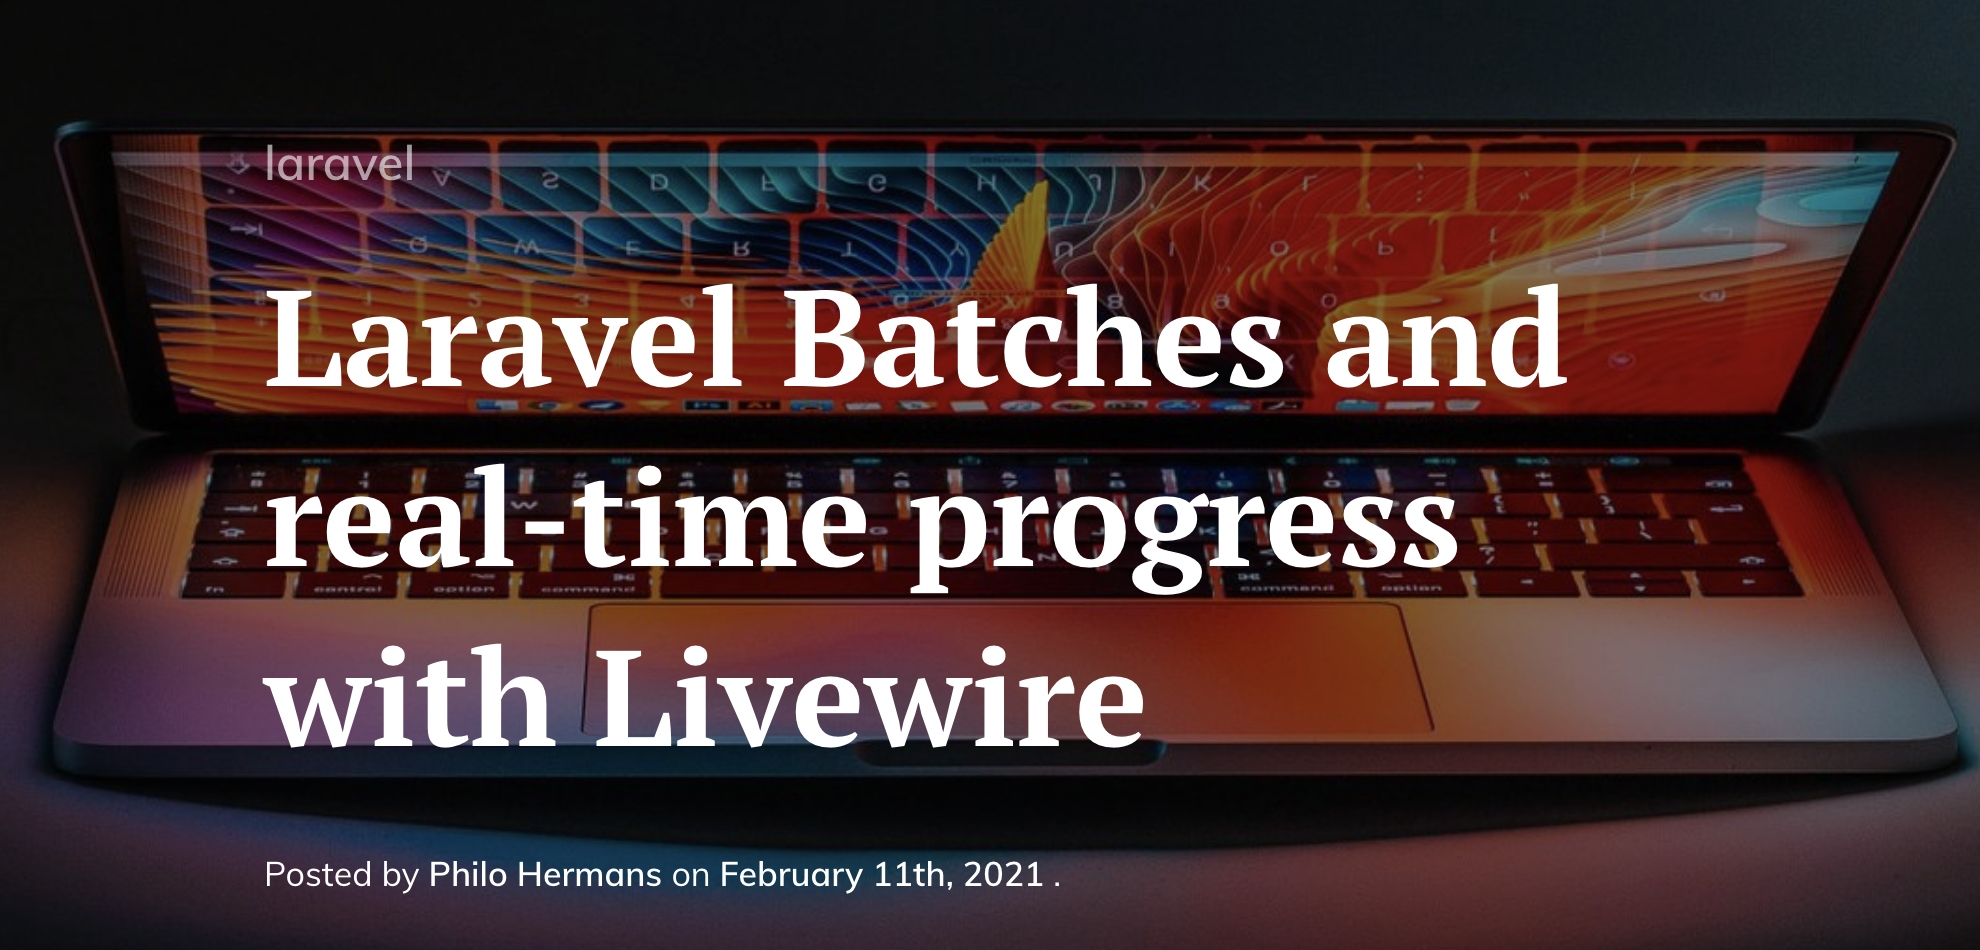 Laravel Batches and real-time progress with Livewire - Post Image